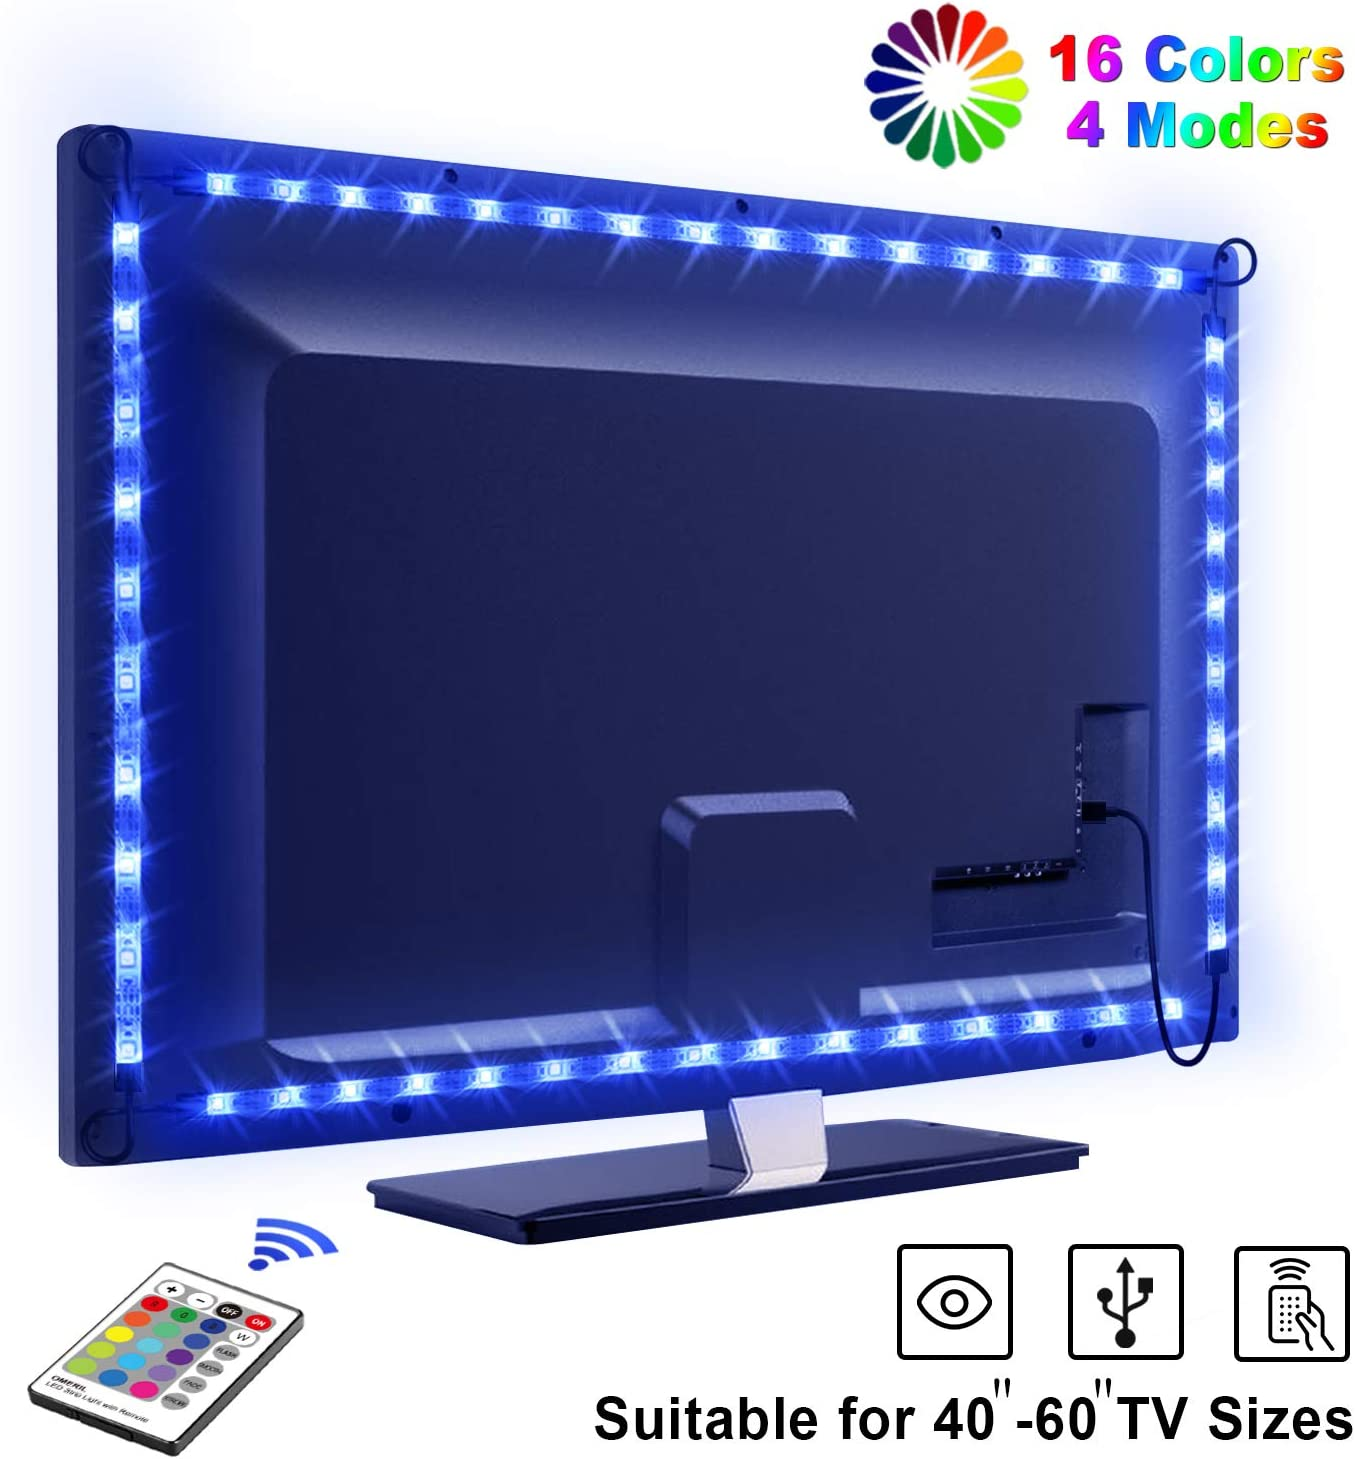 LED TV Retroilluminazione, OMERIL 2.2m Striscia LED RGB USB alimentata Retroilluminazione TV LED con Telecomando, Impermeabile, 16 Colori e 4 Modalit� per HDTV da 40-60 Pollici, PC Monitor ecc